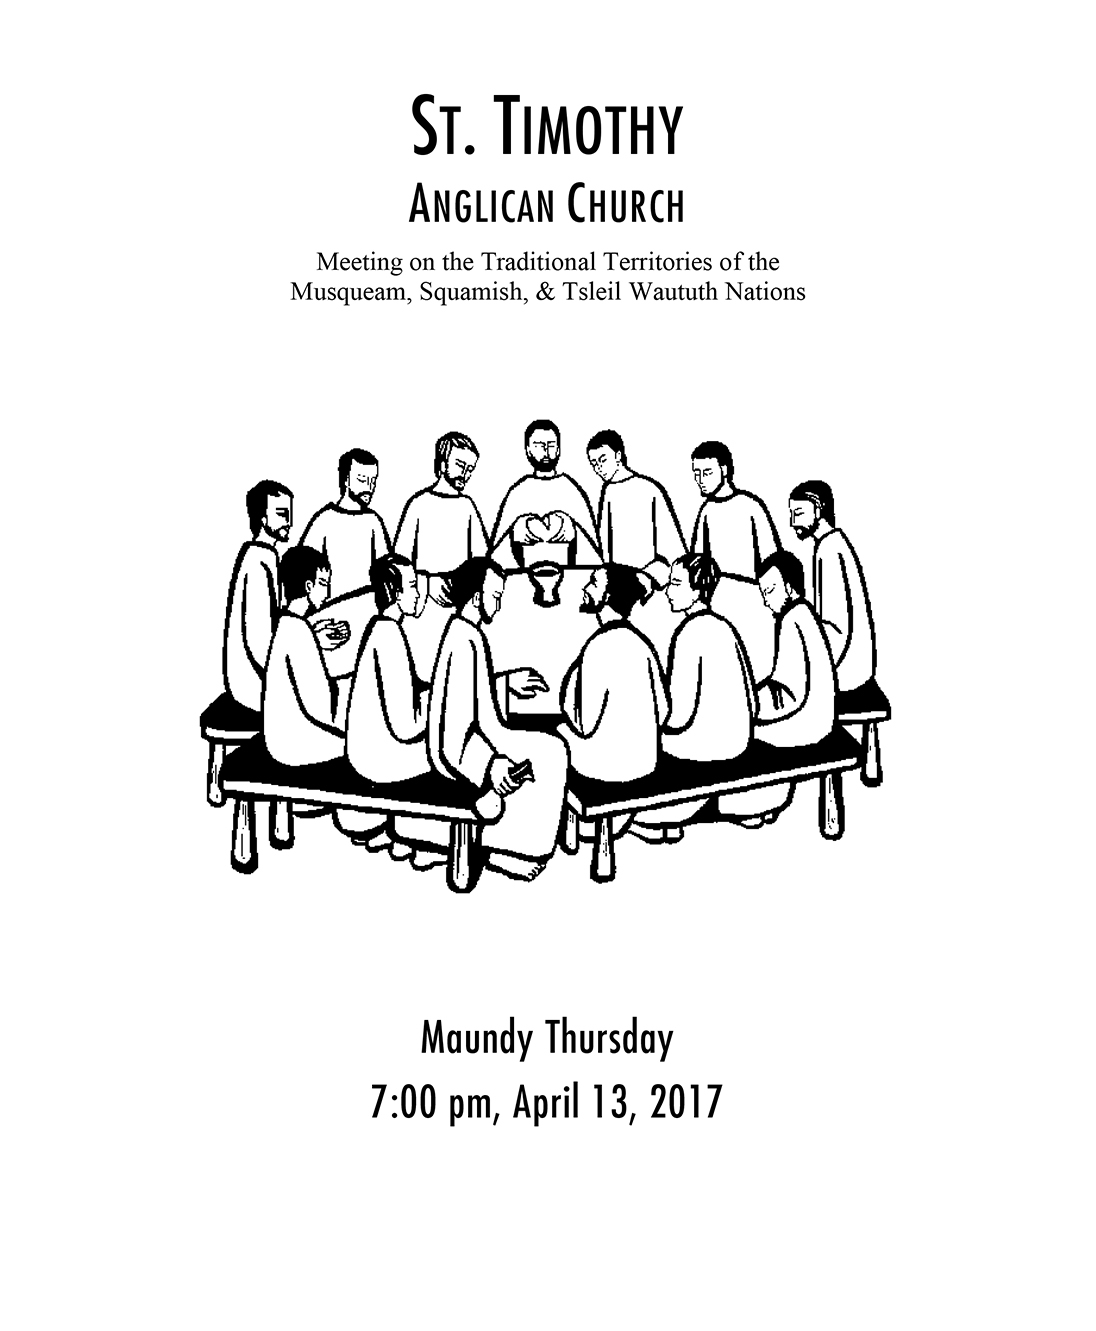 Bulletin: April 13, 2017 (Maundy Thursday)